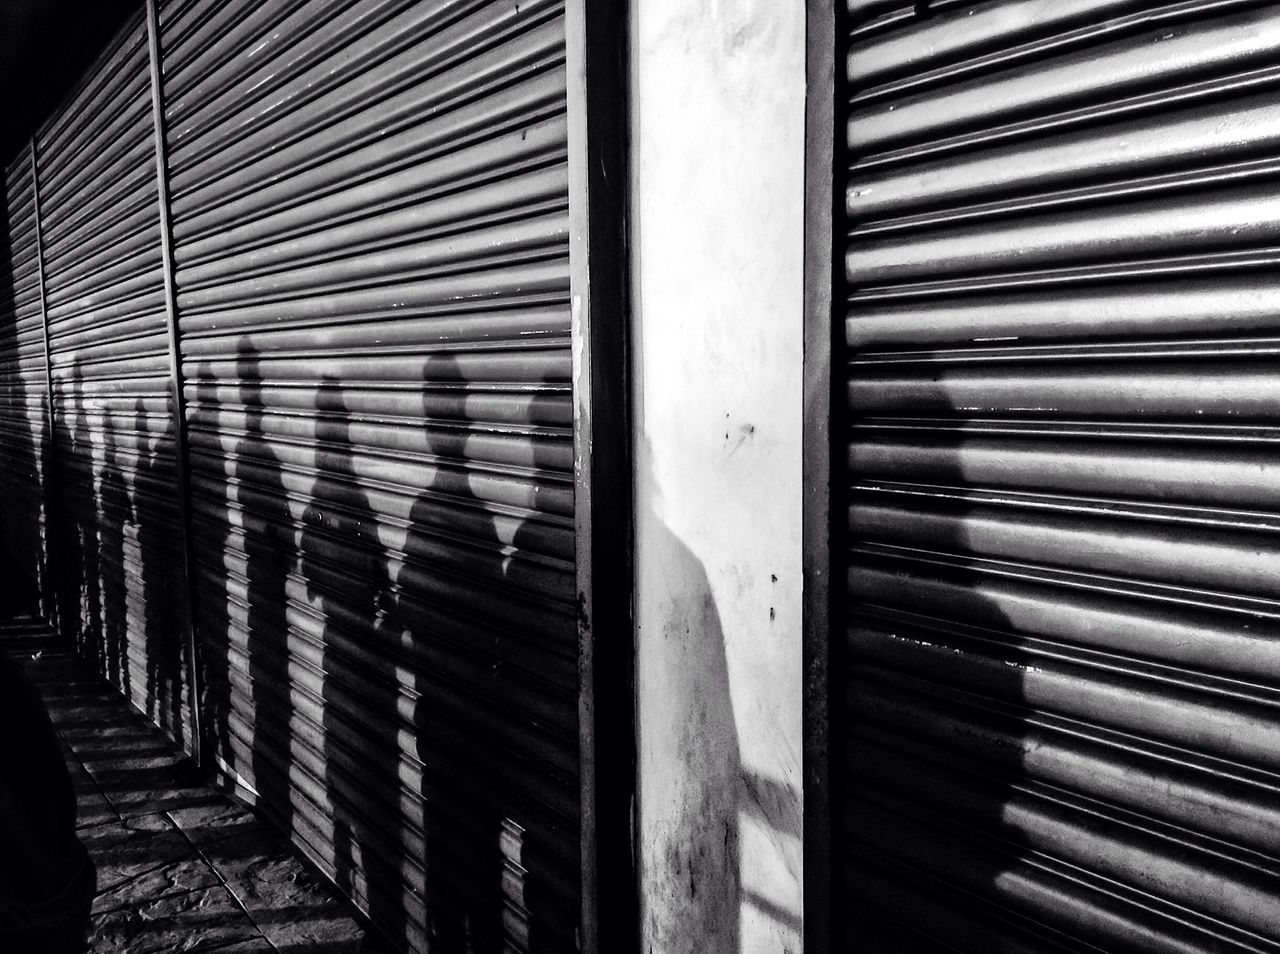 SHADOW PLAY built structure Architecture shutter corrugated iron no people building exterior day metal outdoors Corrugated close-up shadow streetphotography street photography streetphoto_bw real people